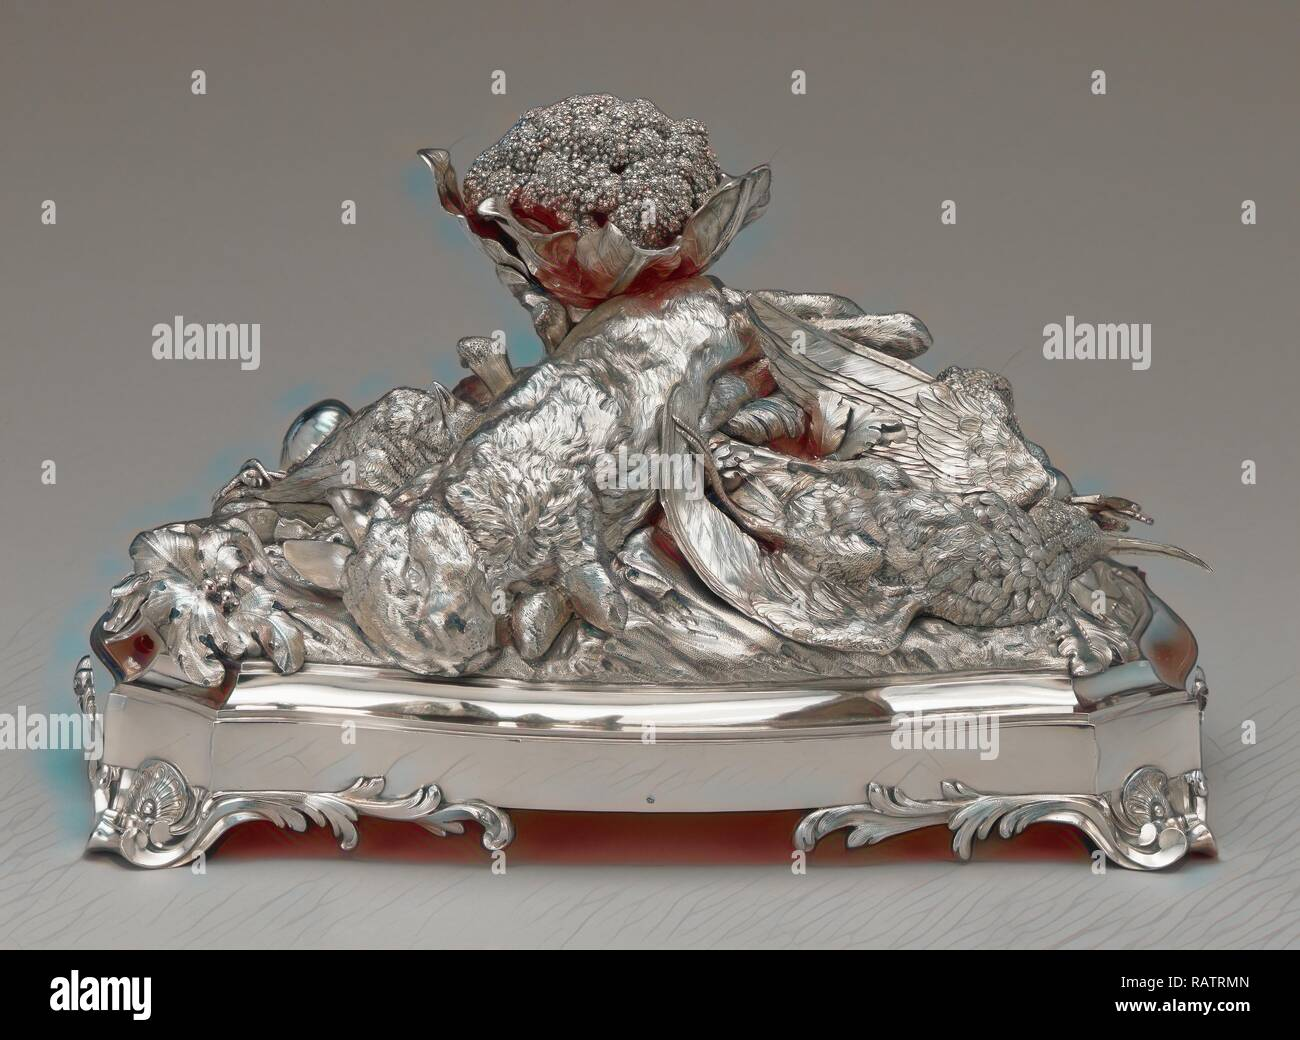 Art De La Table Stock Photos & Art De La Table Stock Images - Alamy